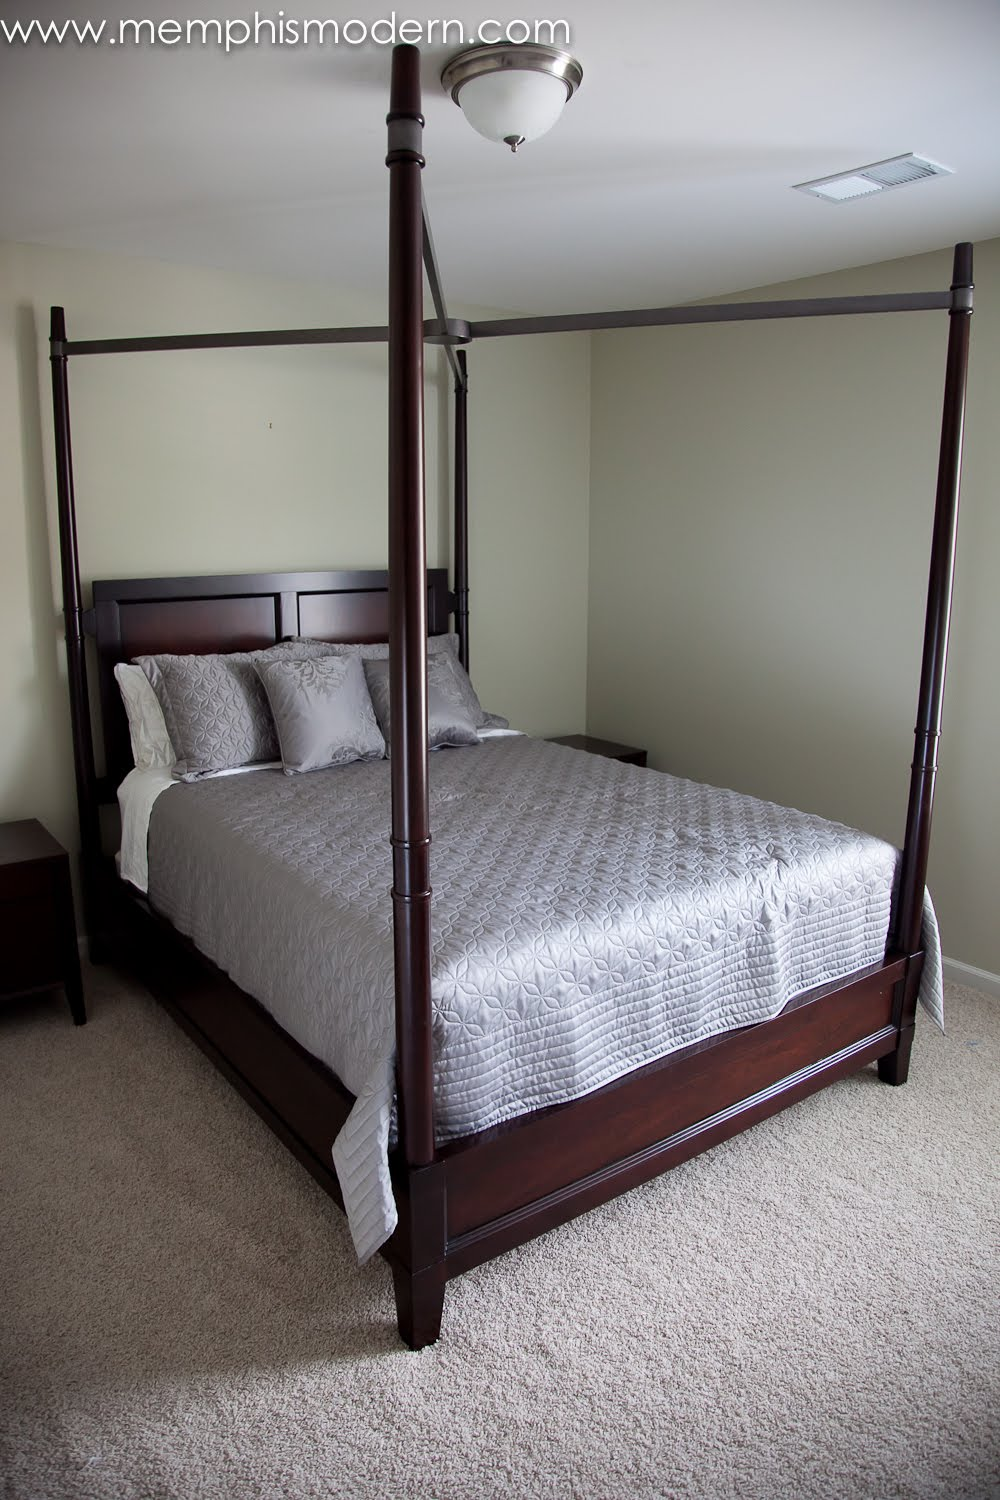 Memphis Modern Four Poster Bed